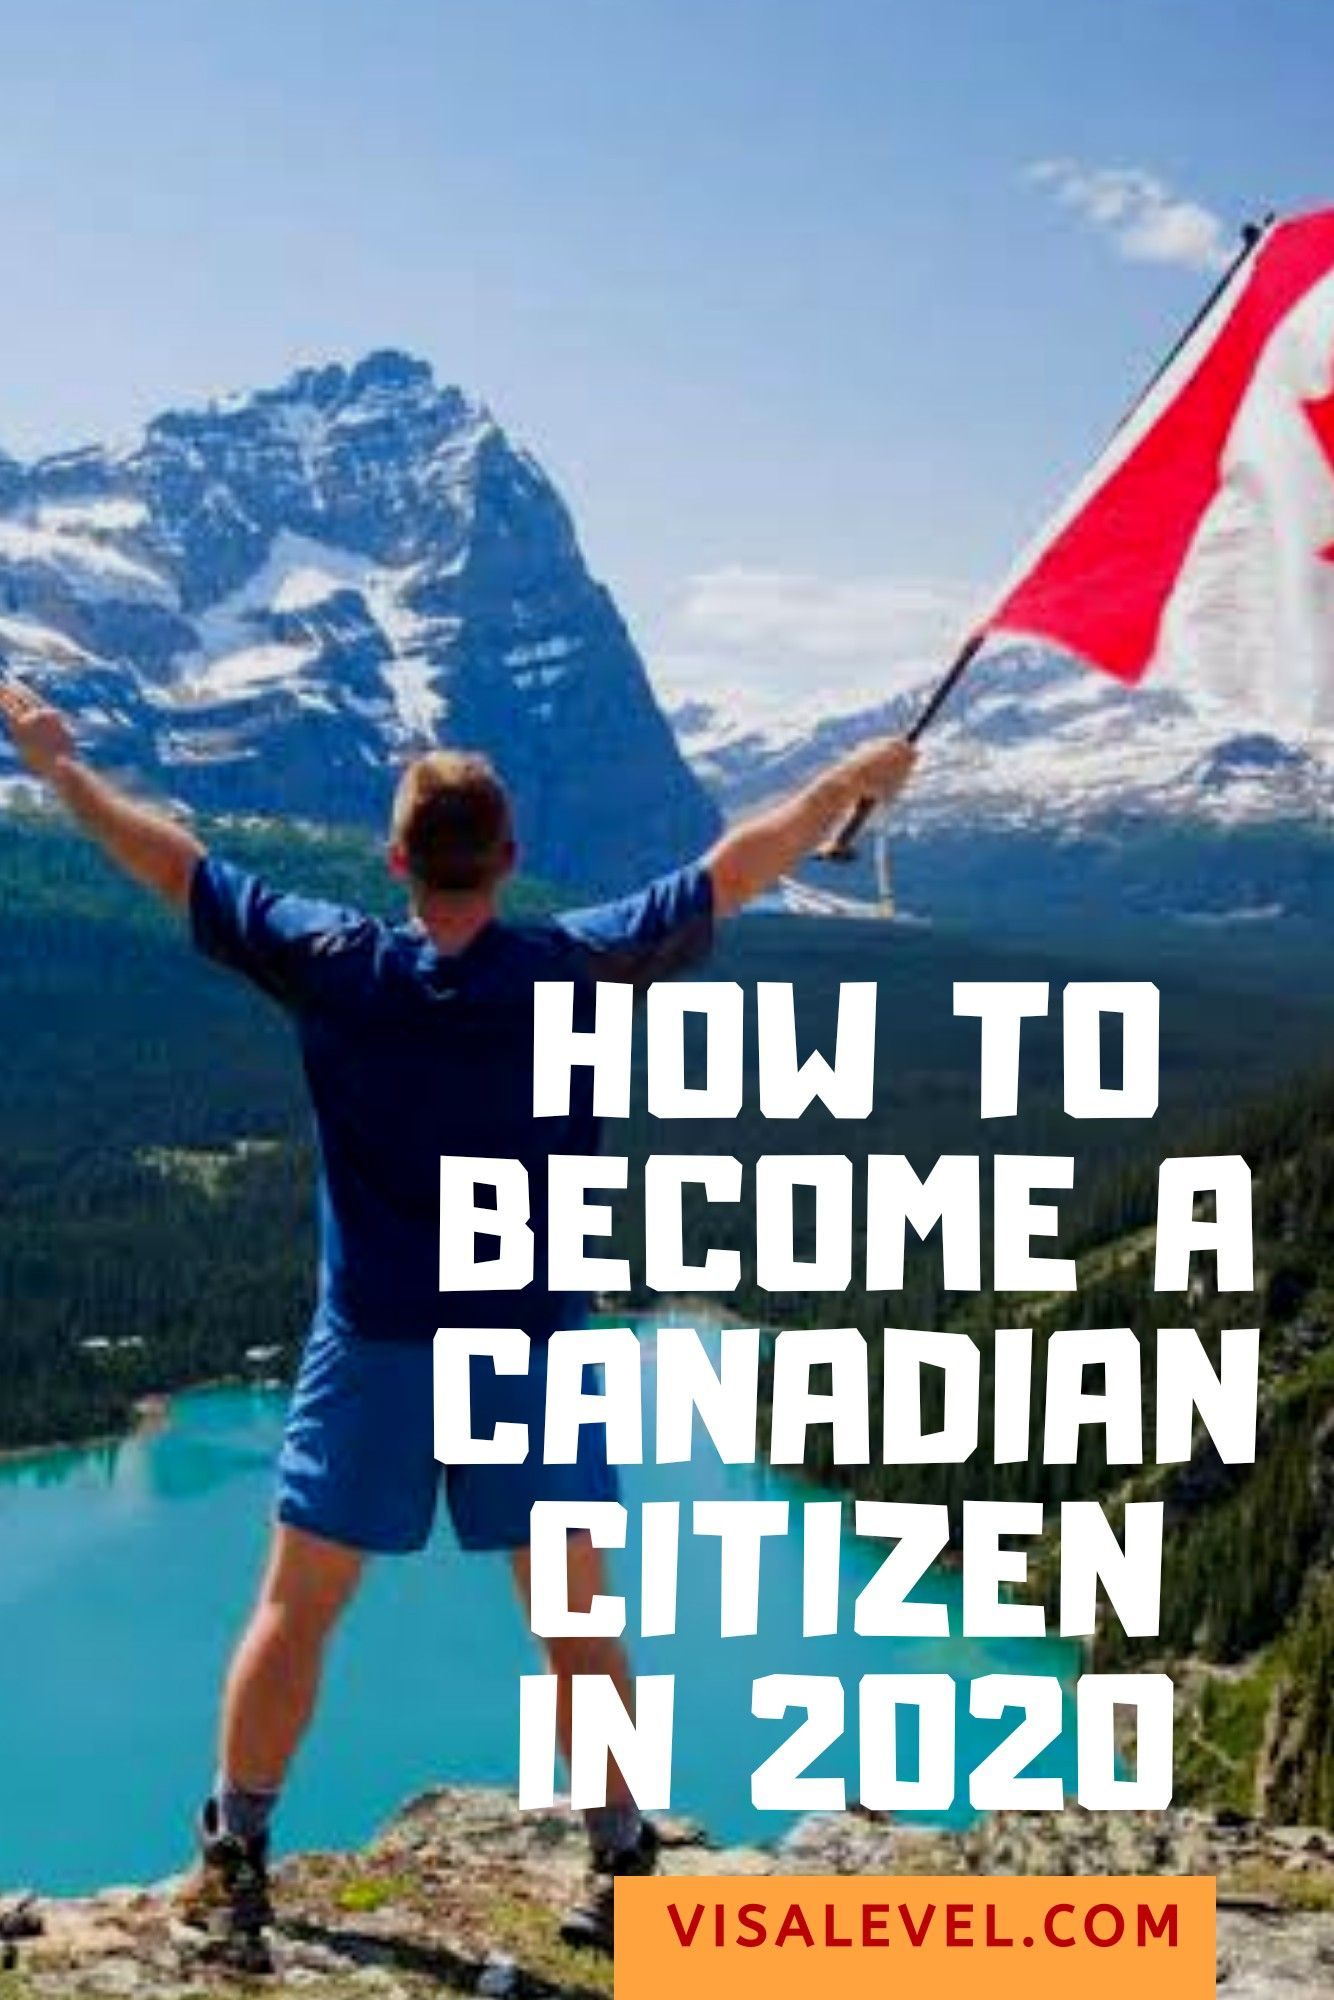 How To Become A Canadian Citizen In 2020 In 2020 How To Become